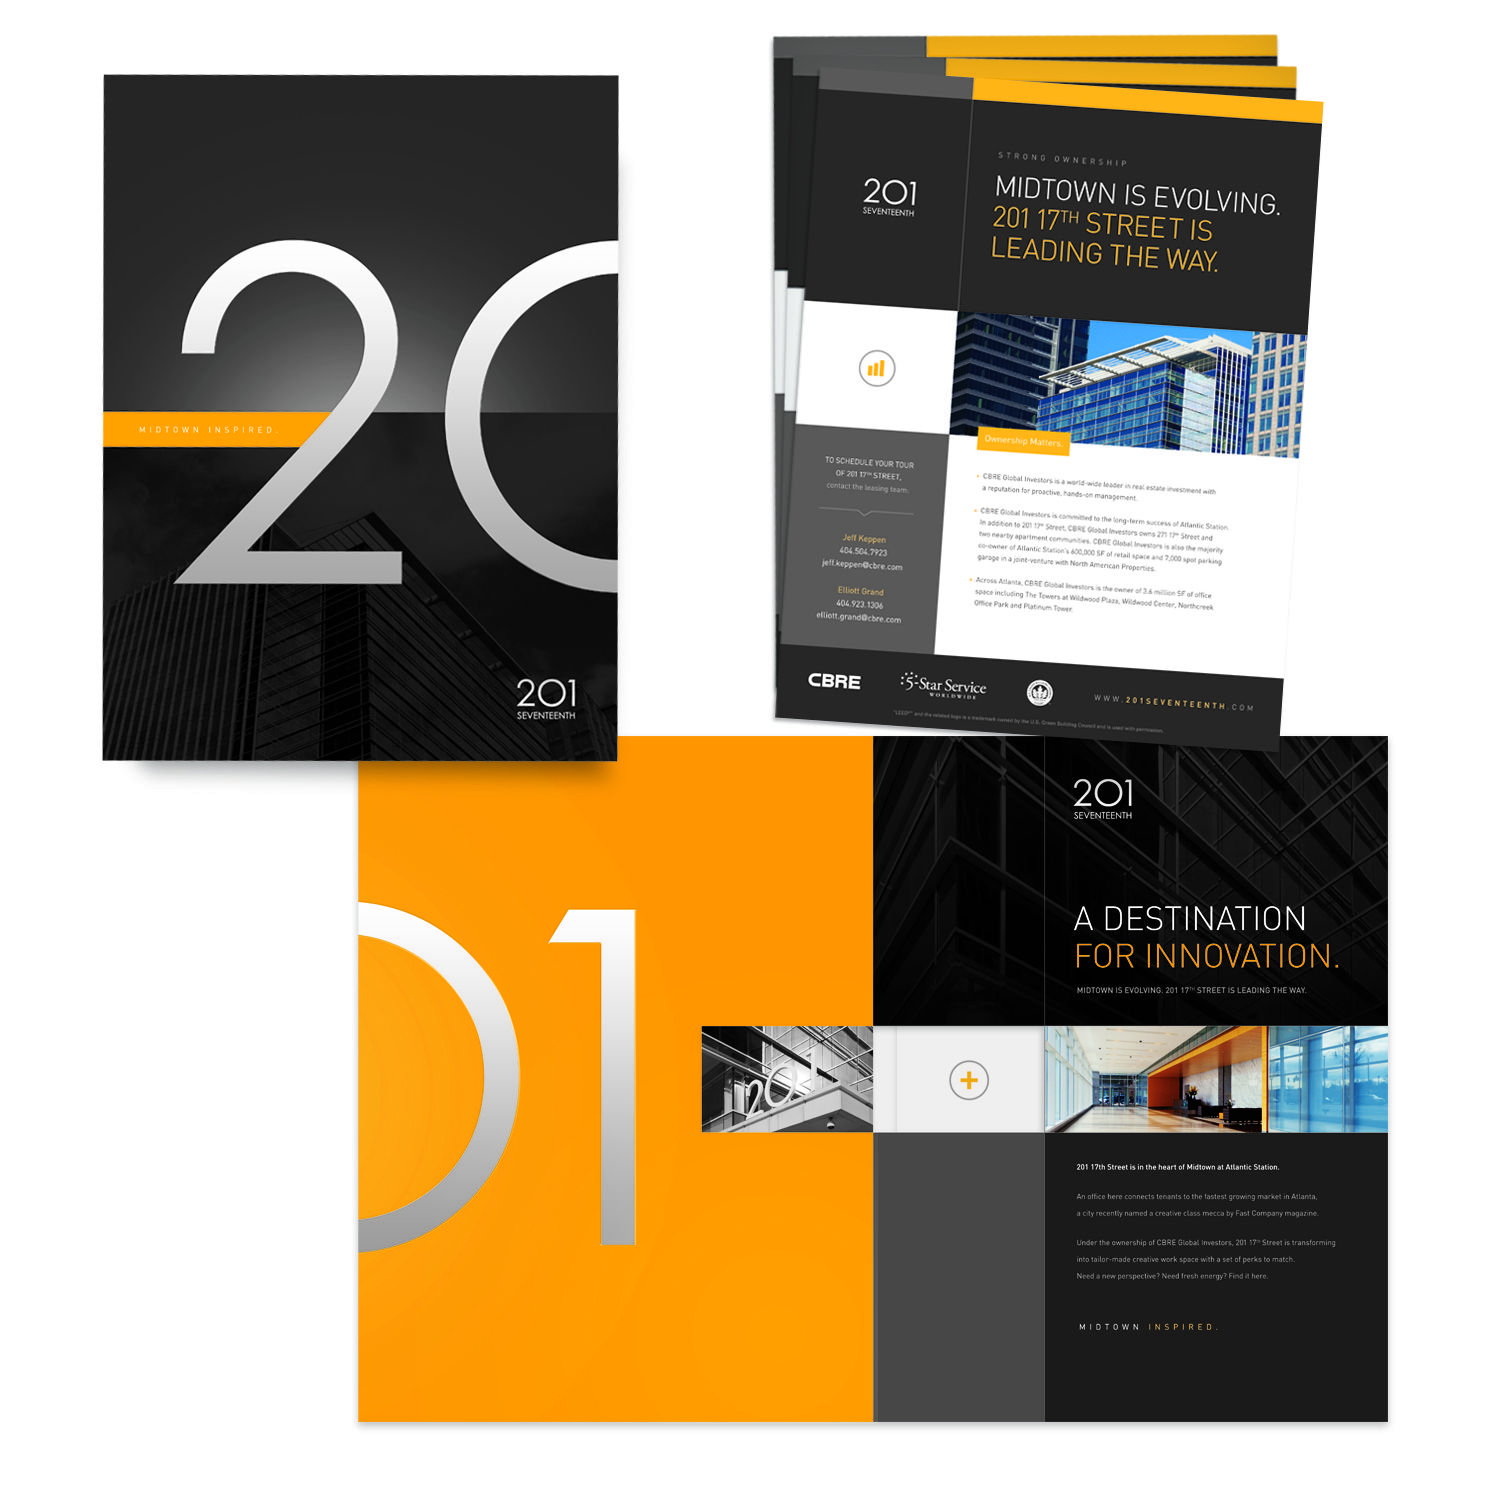 201 Street Pocket Folder And Inserts  Resume Presentation Folder